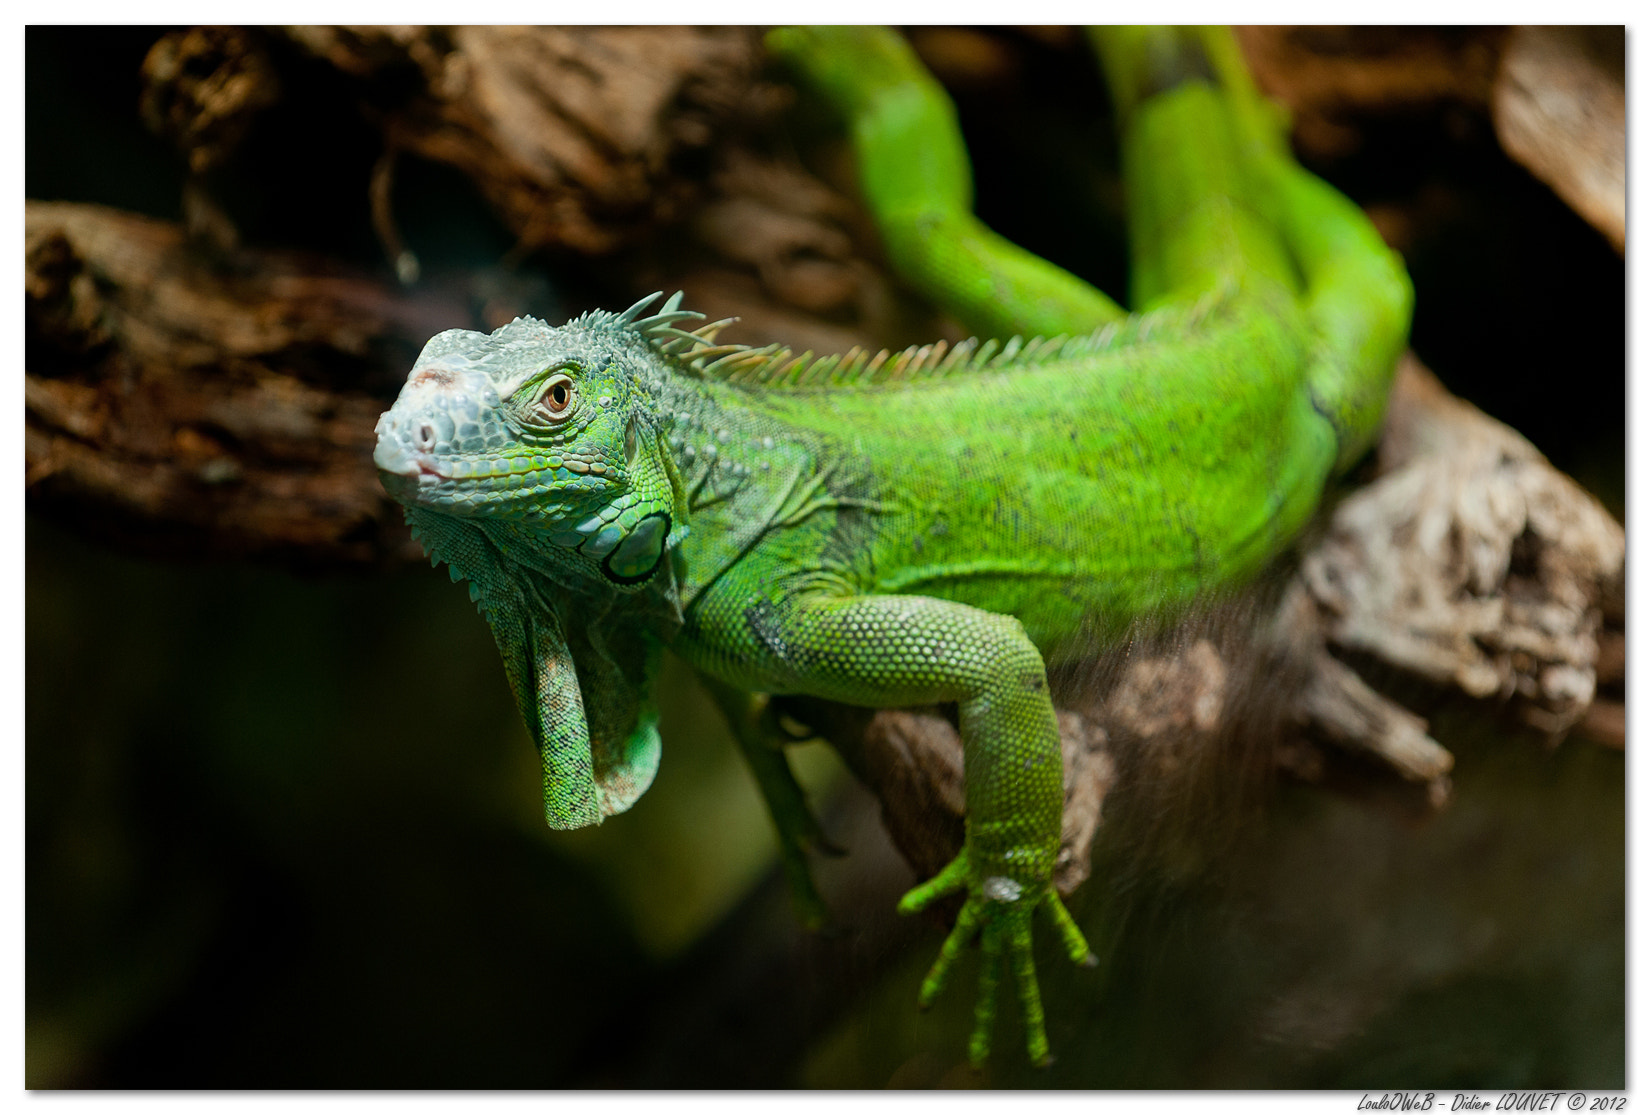 Photograph Iguane vert - Zoo de Beauval by LouloOWeB  on 500px